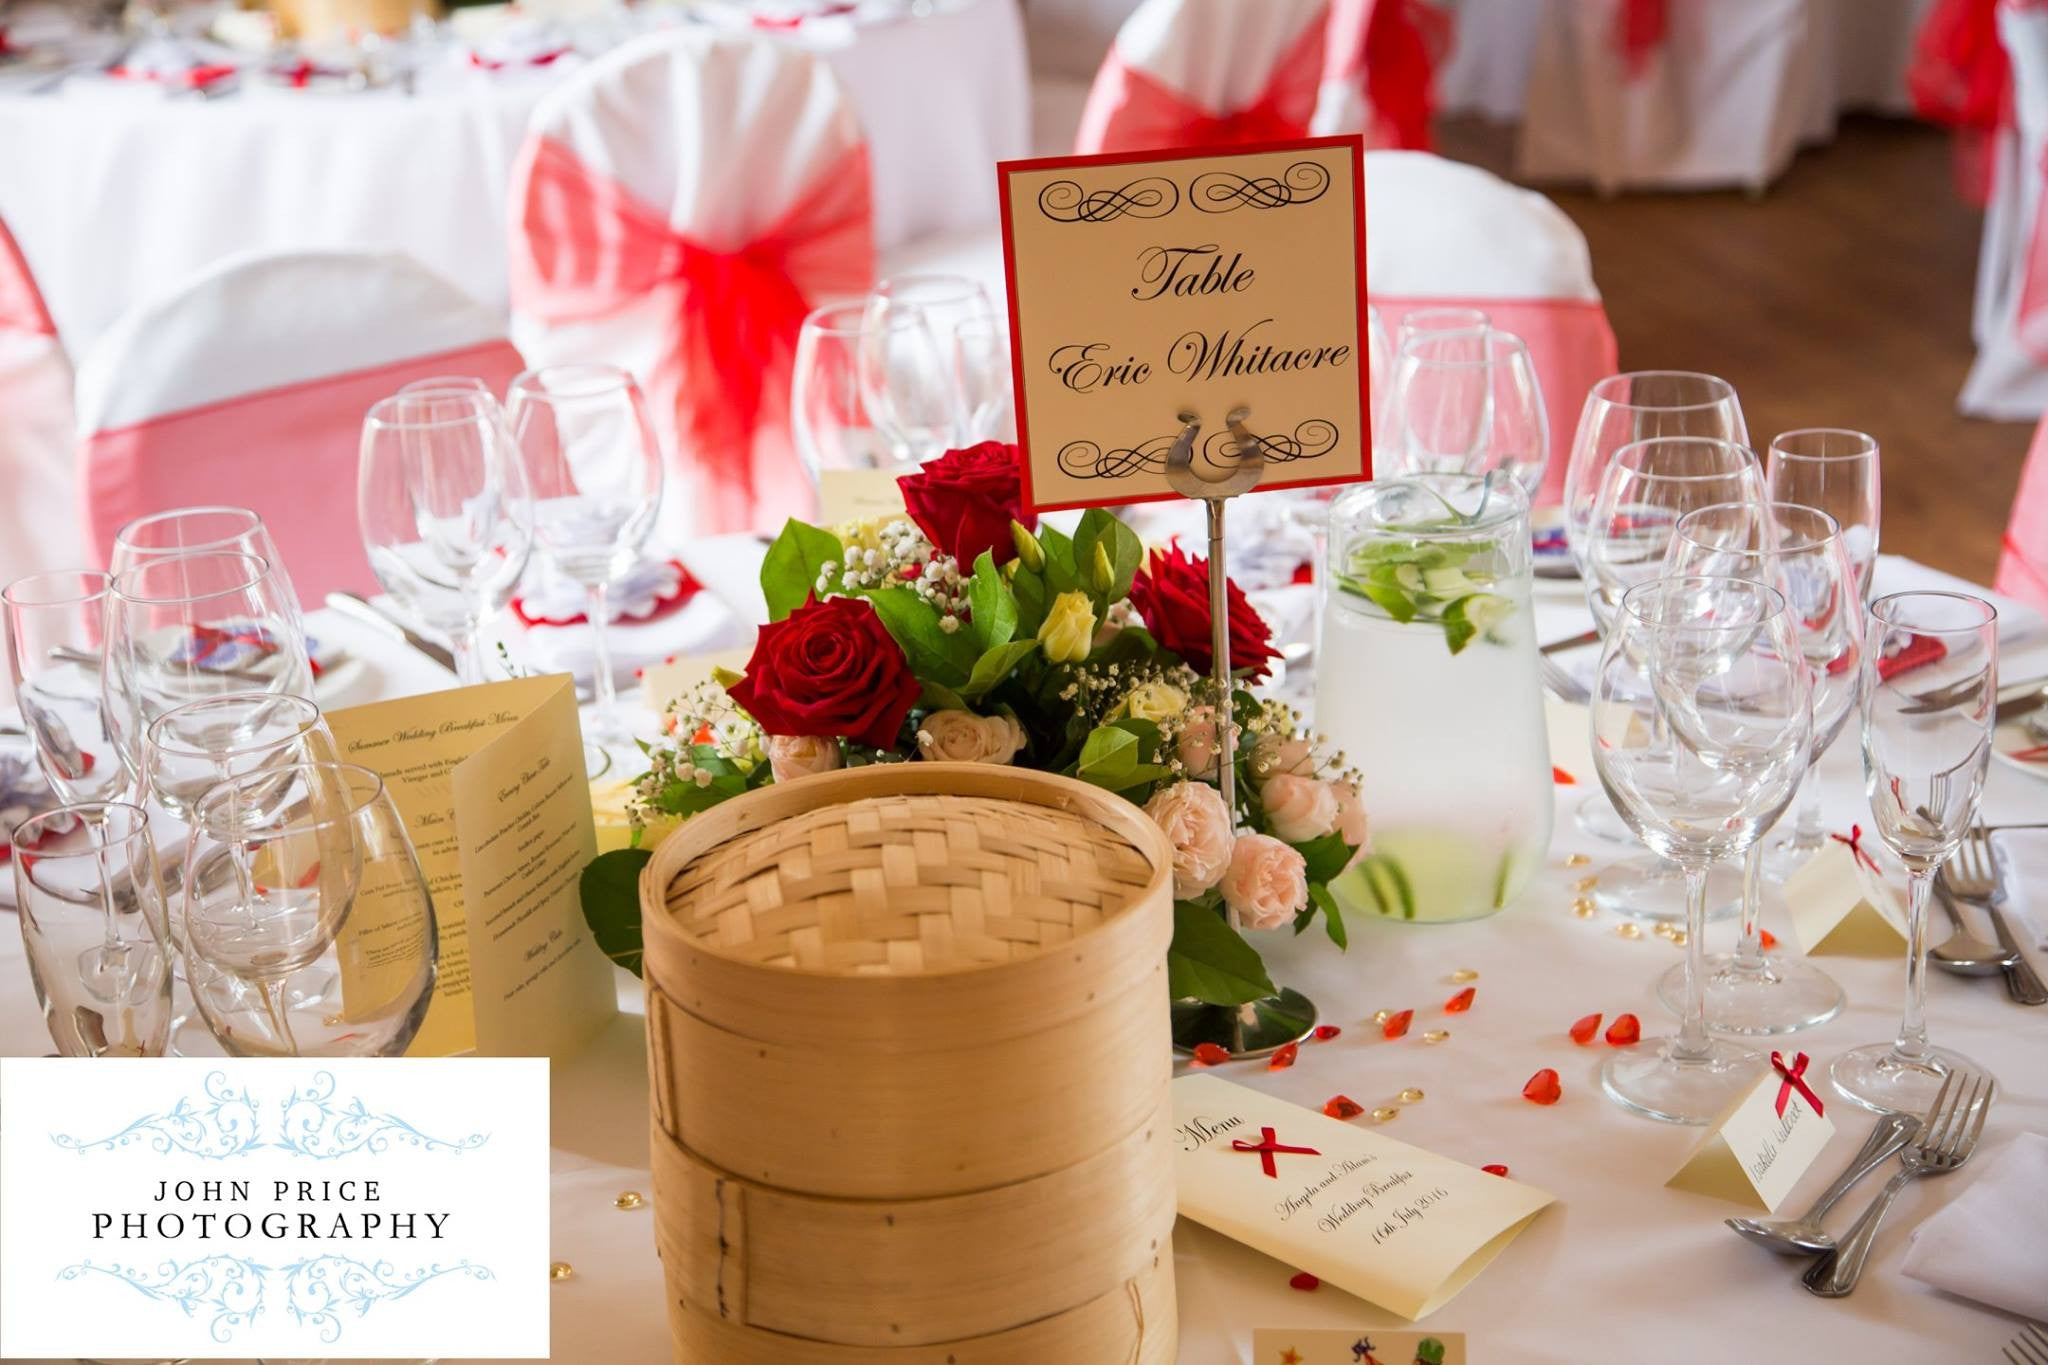 Red Rose wedding table decoration.